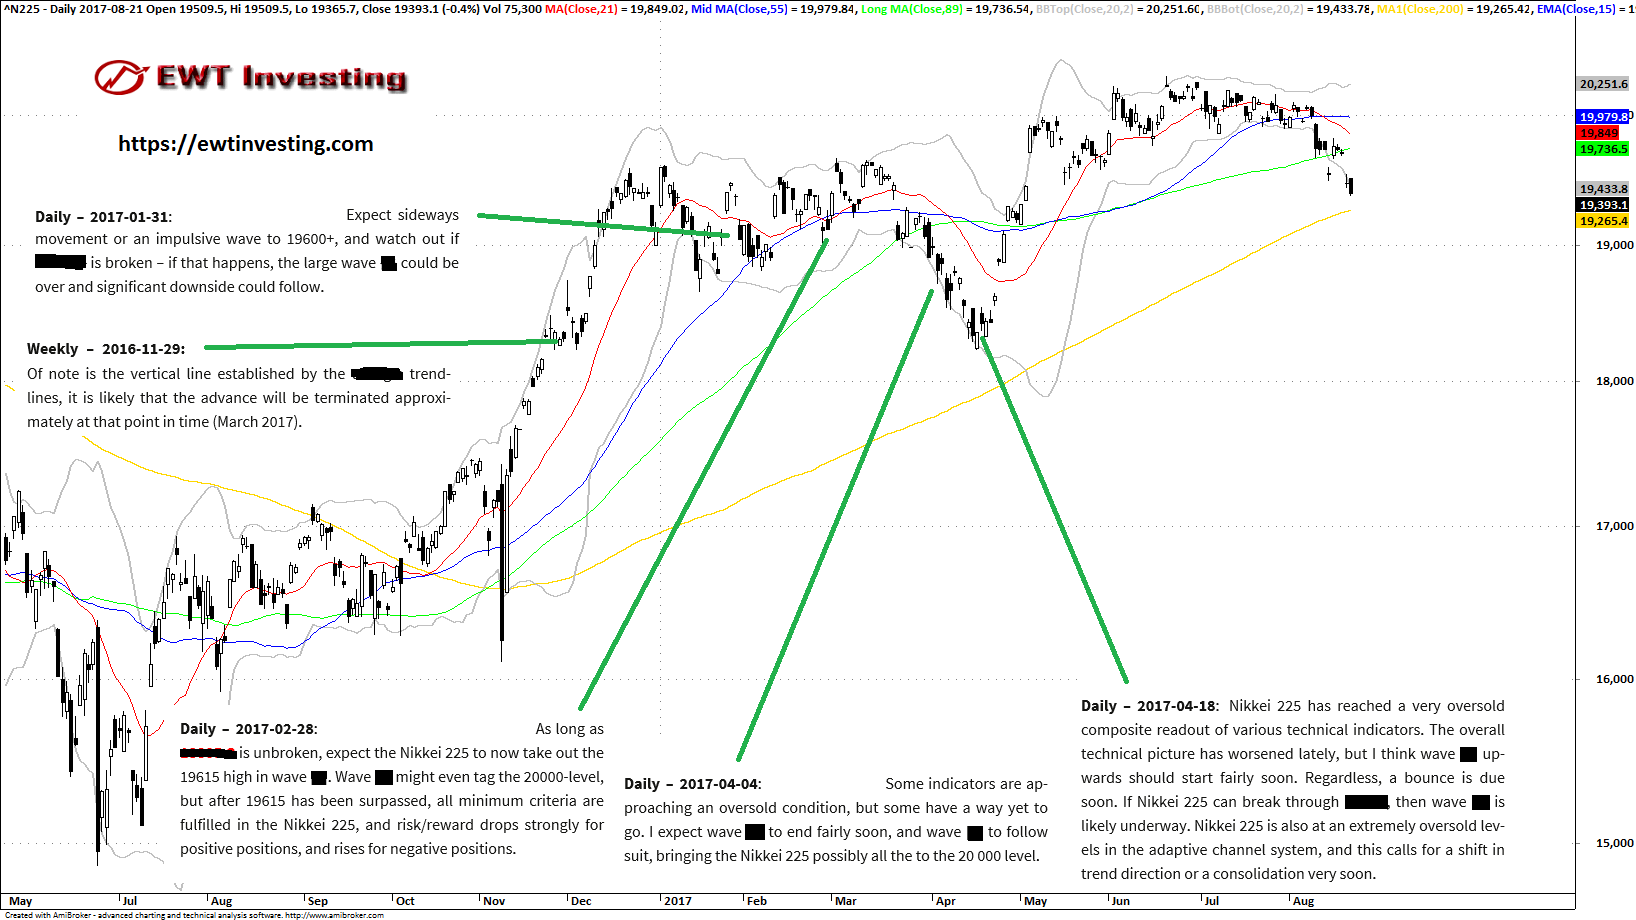 Elliott Wave Theory analysis on Nikkei 225 by EWT Investing